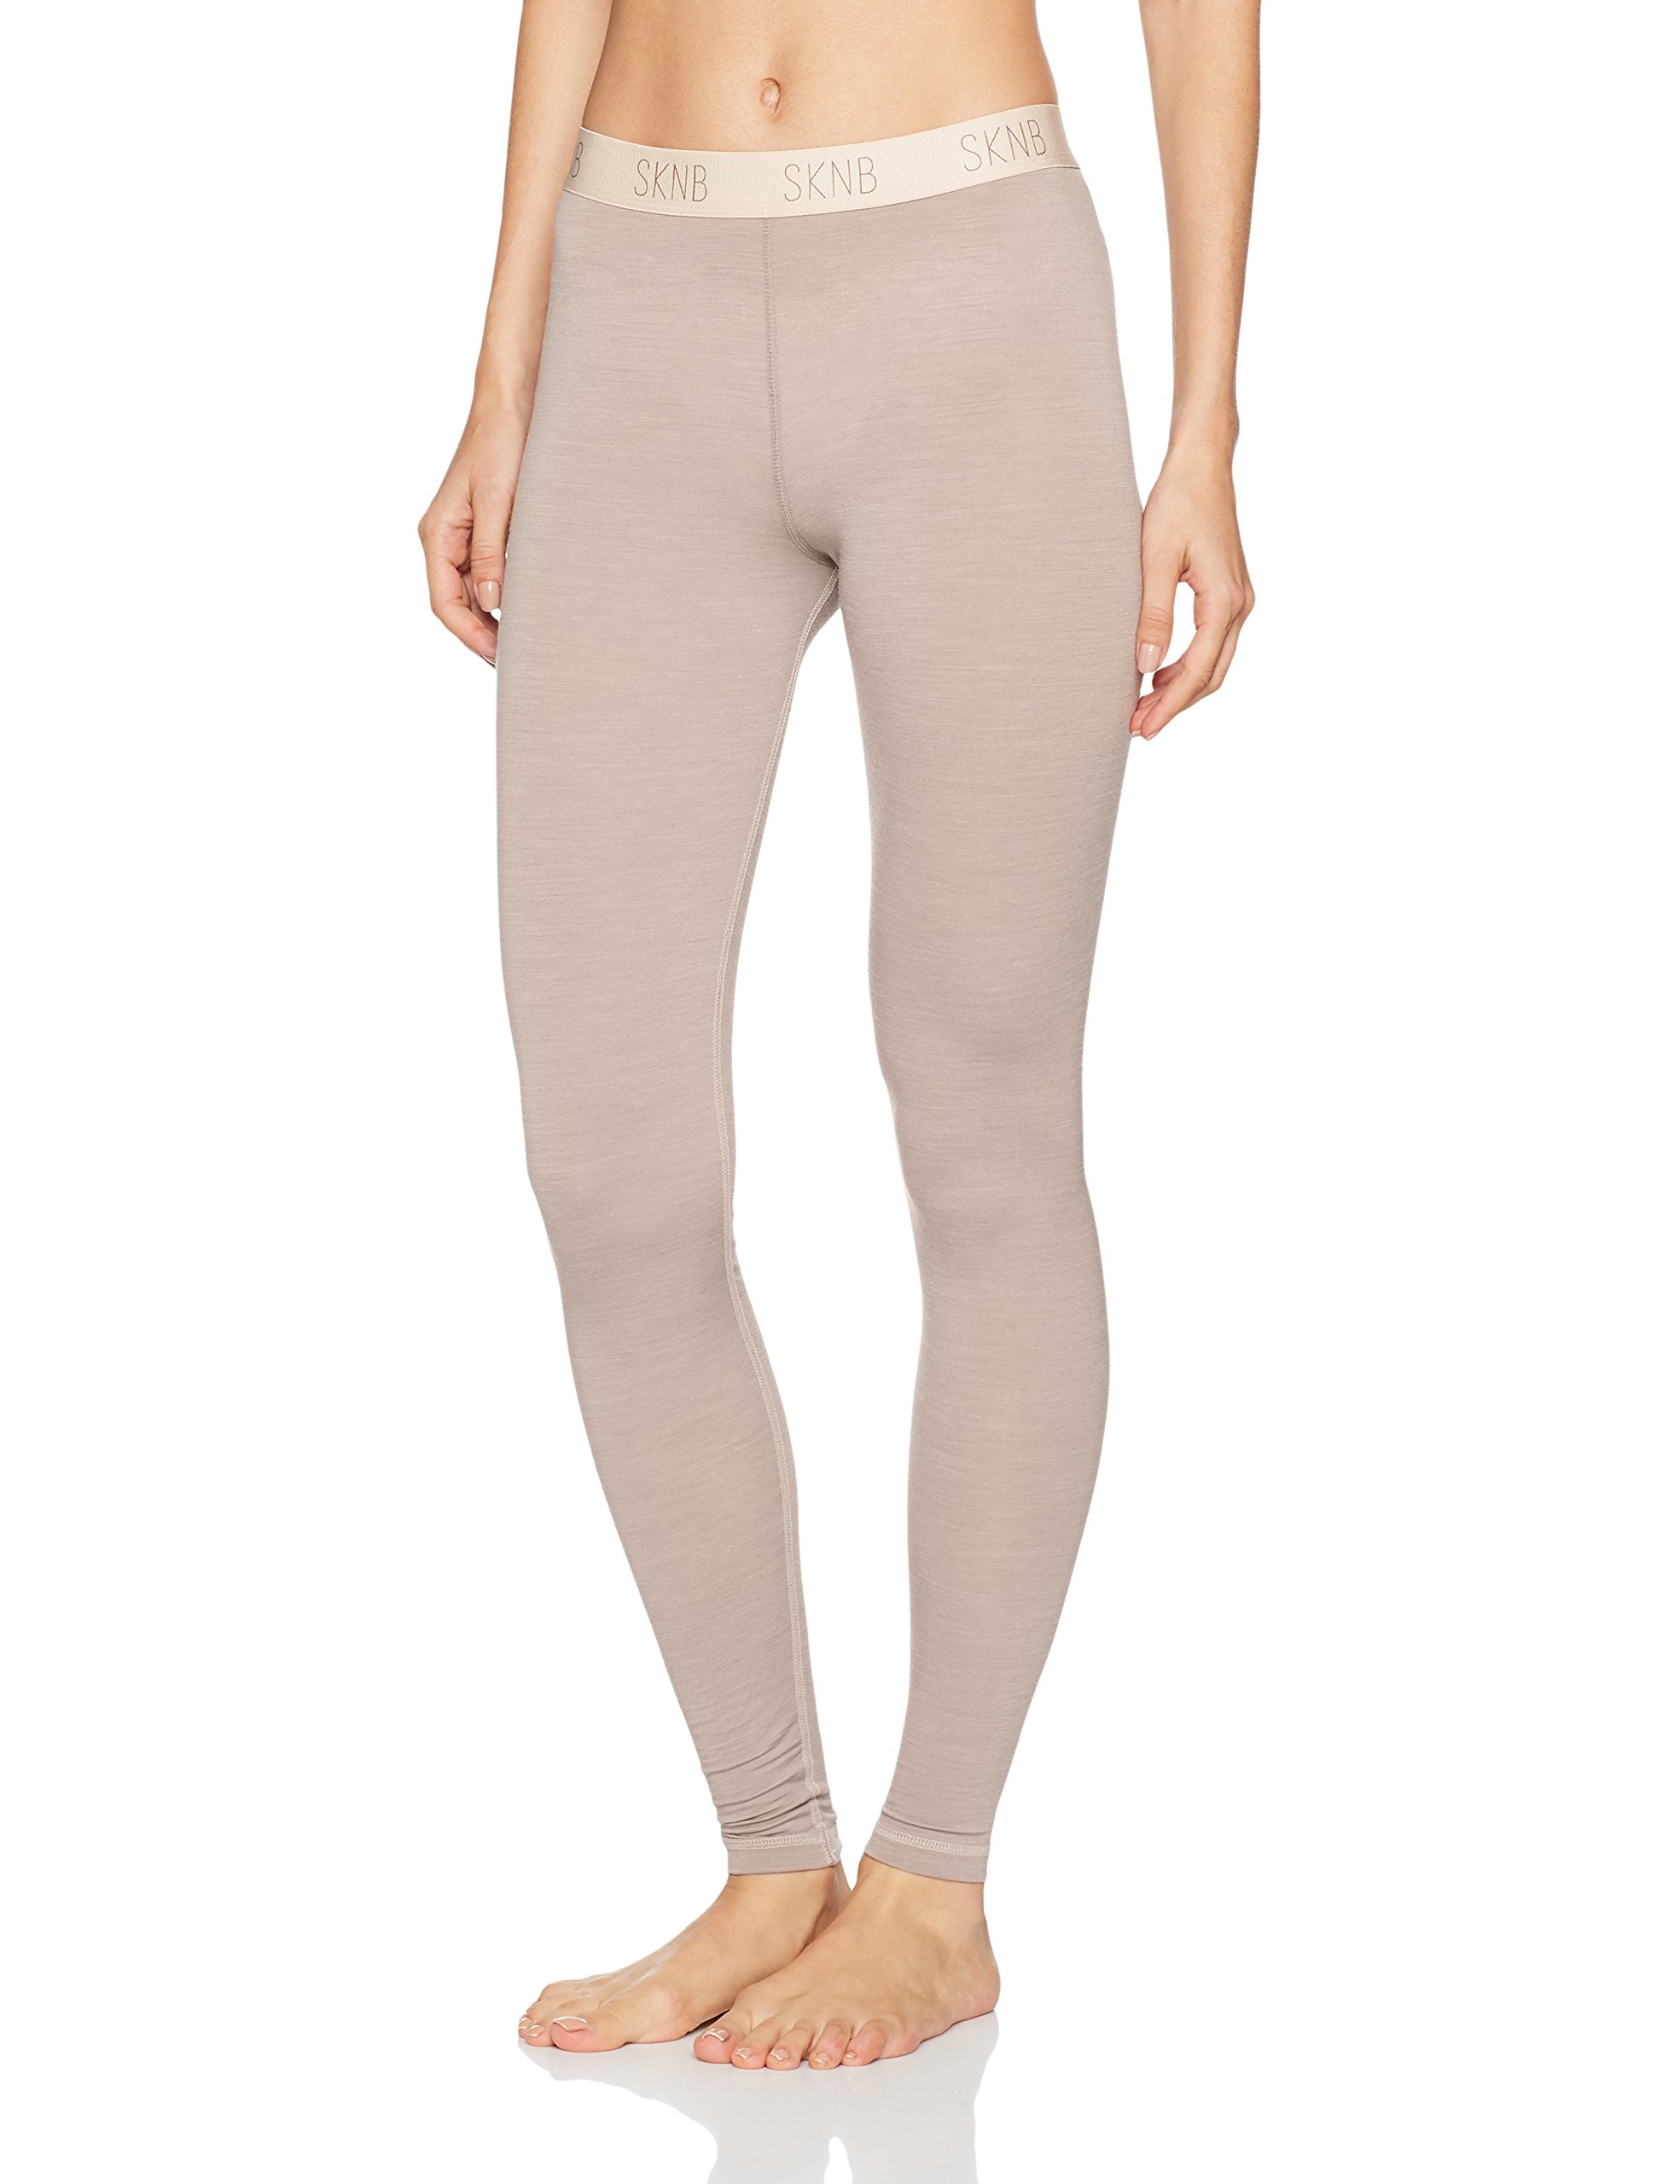 468344taille Fabricant42Femme Active Wool Lang ThermiqueGristaupe Women Bas Skiny Leggings Melange QsChrtdx